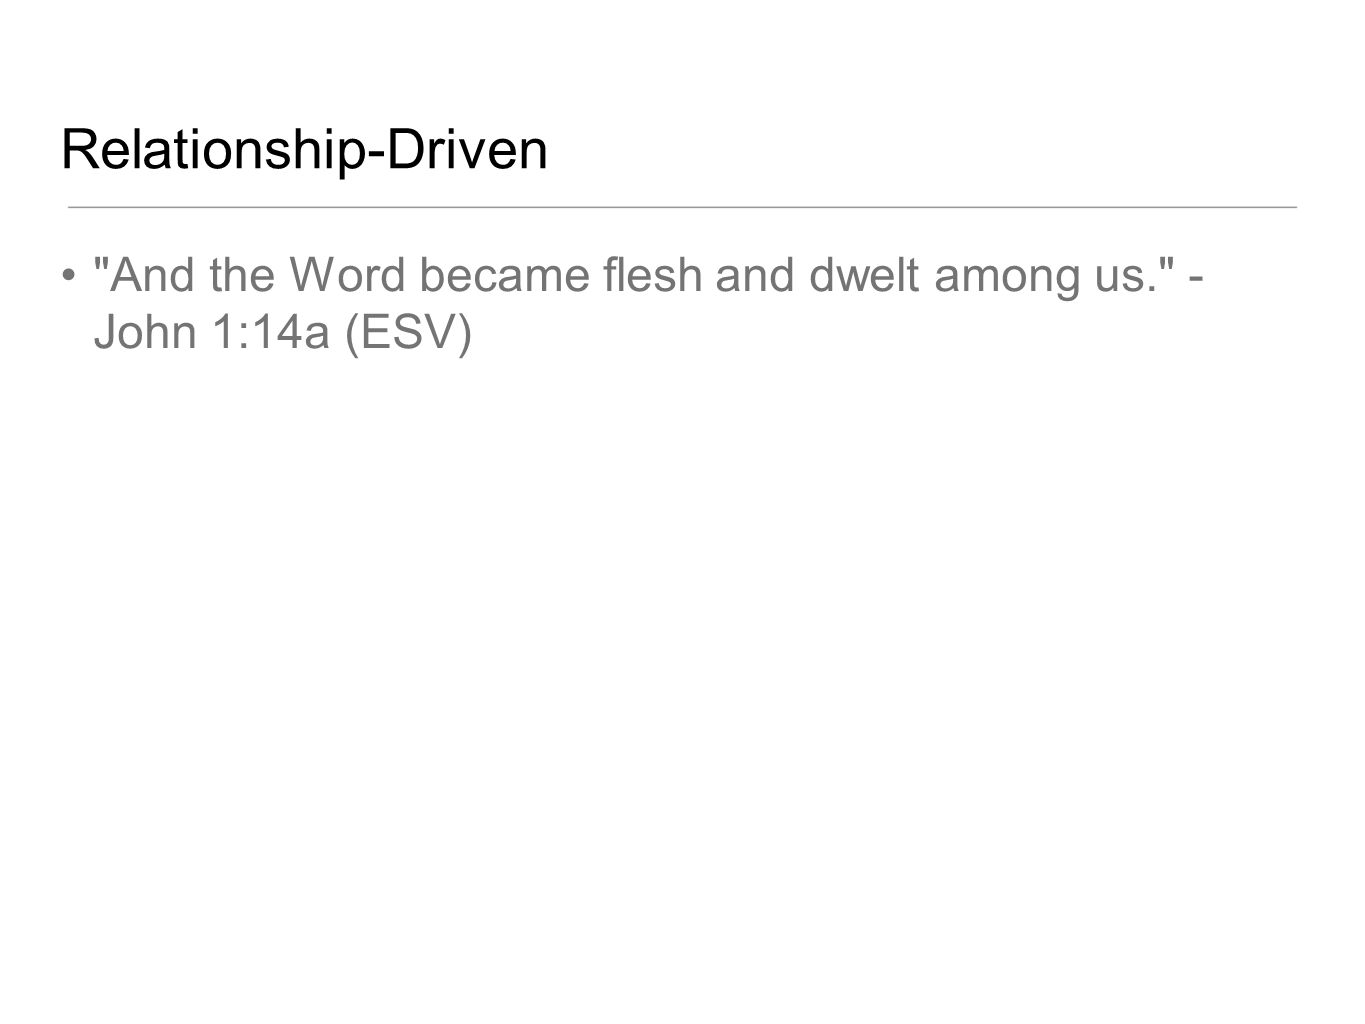 Relationship-Driven Students grow in their relationship with Jesus.